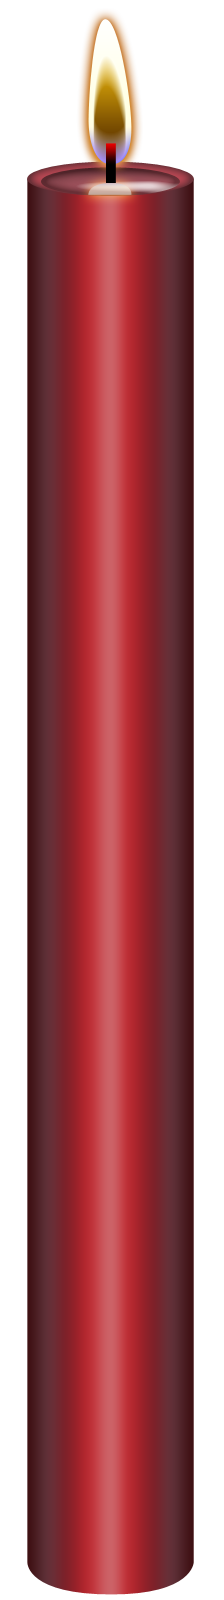 Red candle png. Metallic stock by blood